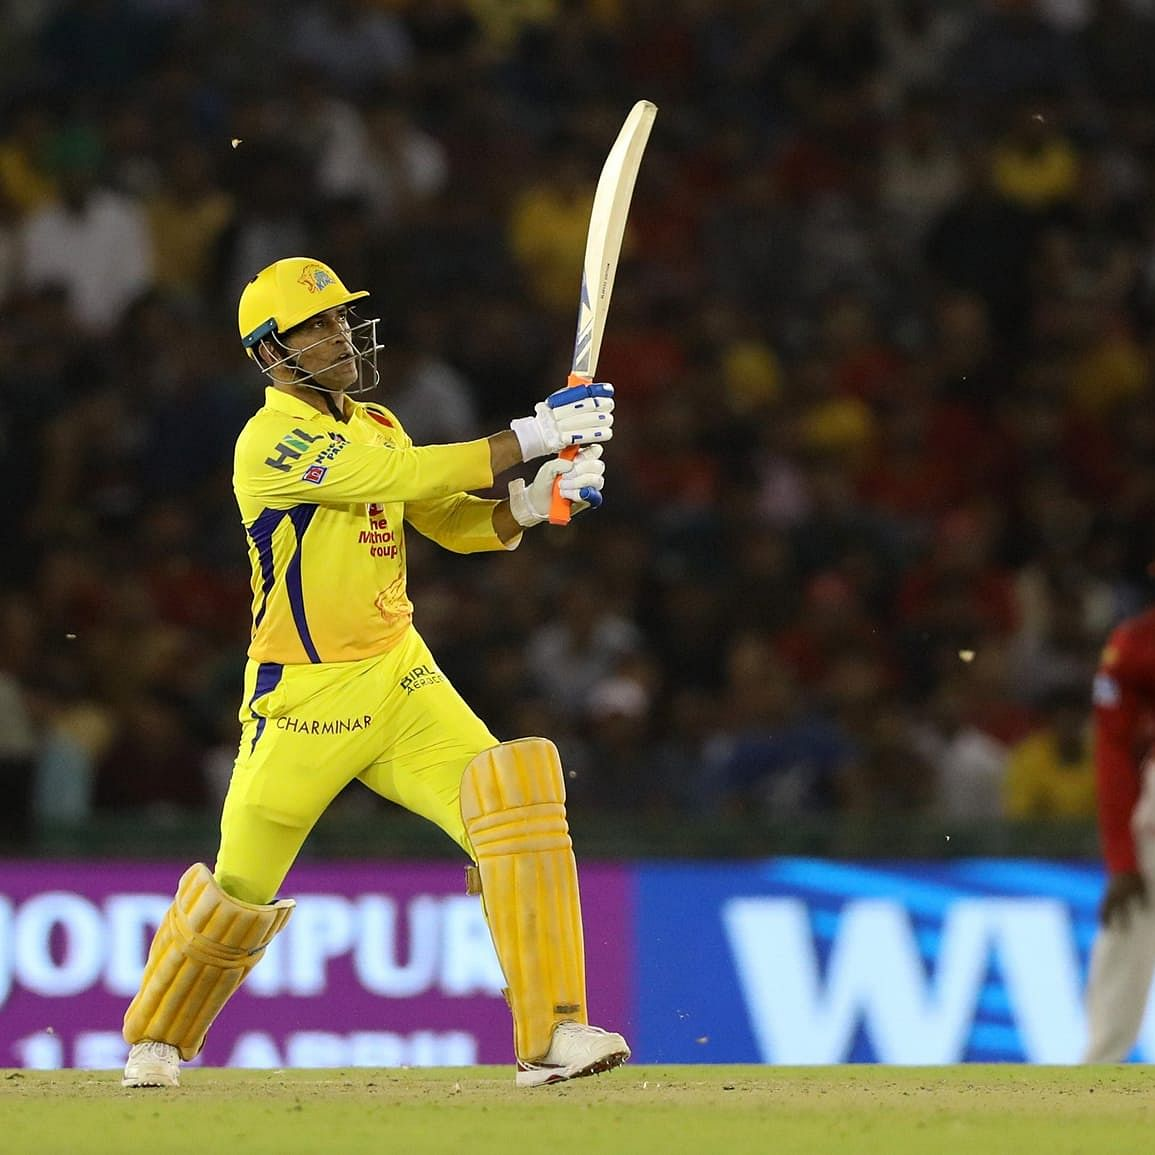 IPL 2020: CSK skipper MS Dhoni to enter this prestigious T20 list